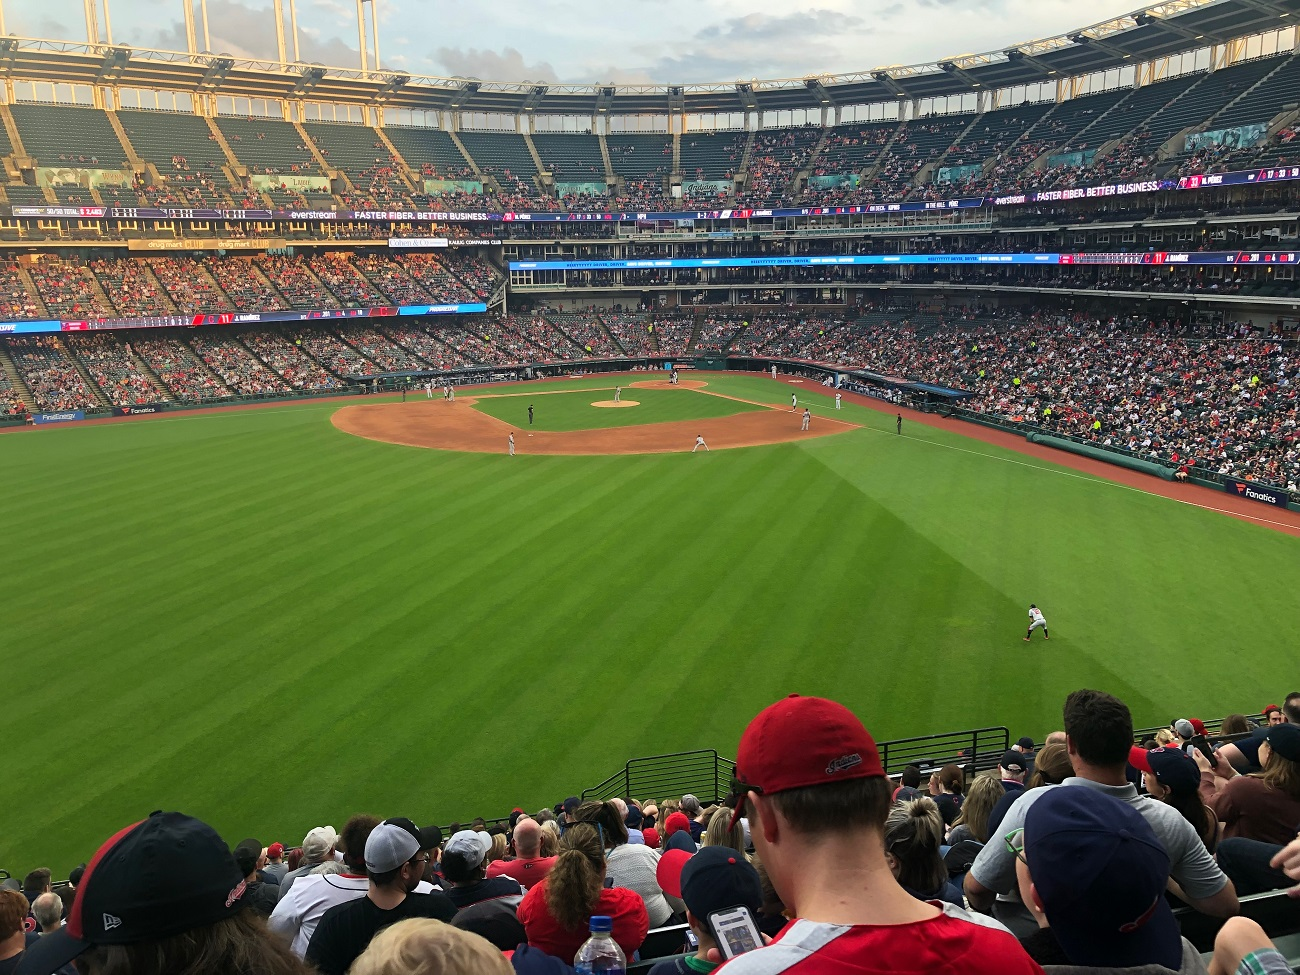 Bleacher View at Progressive Field